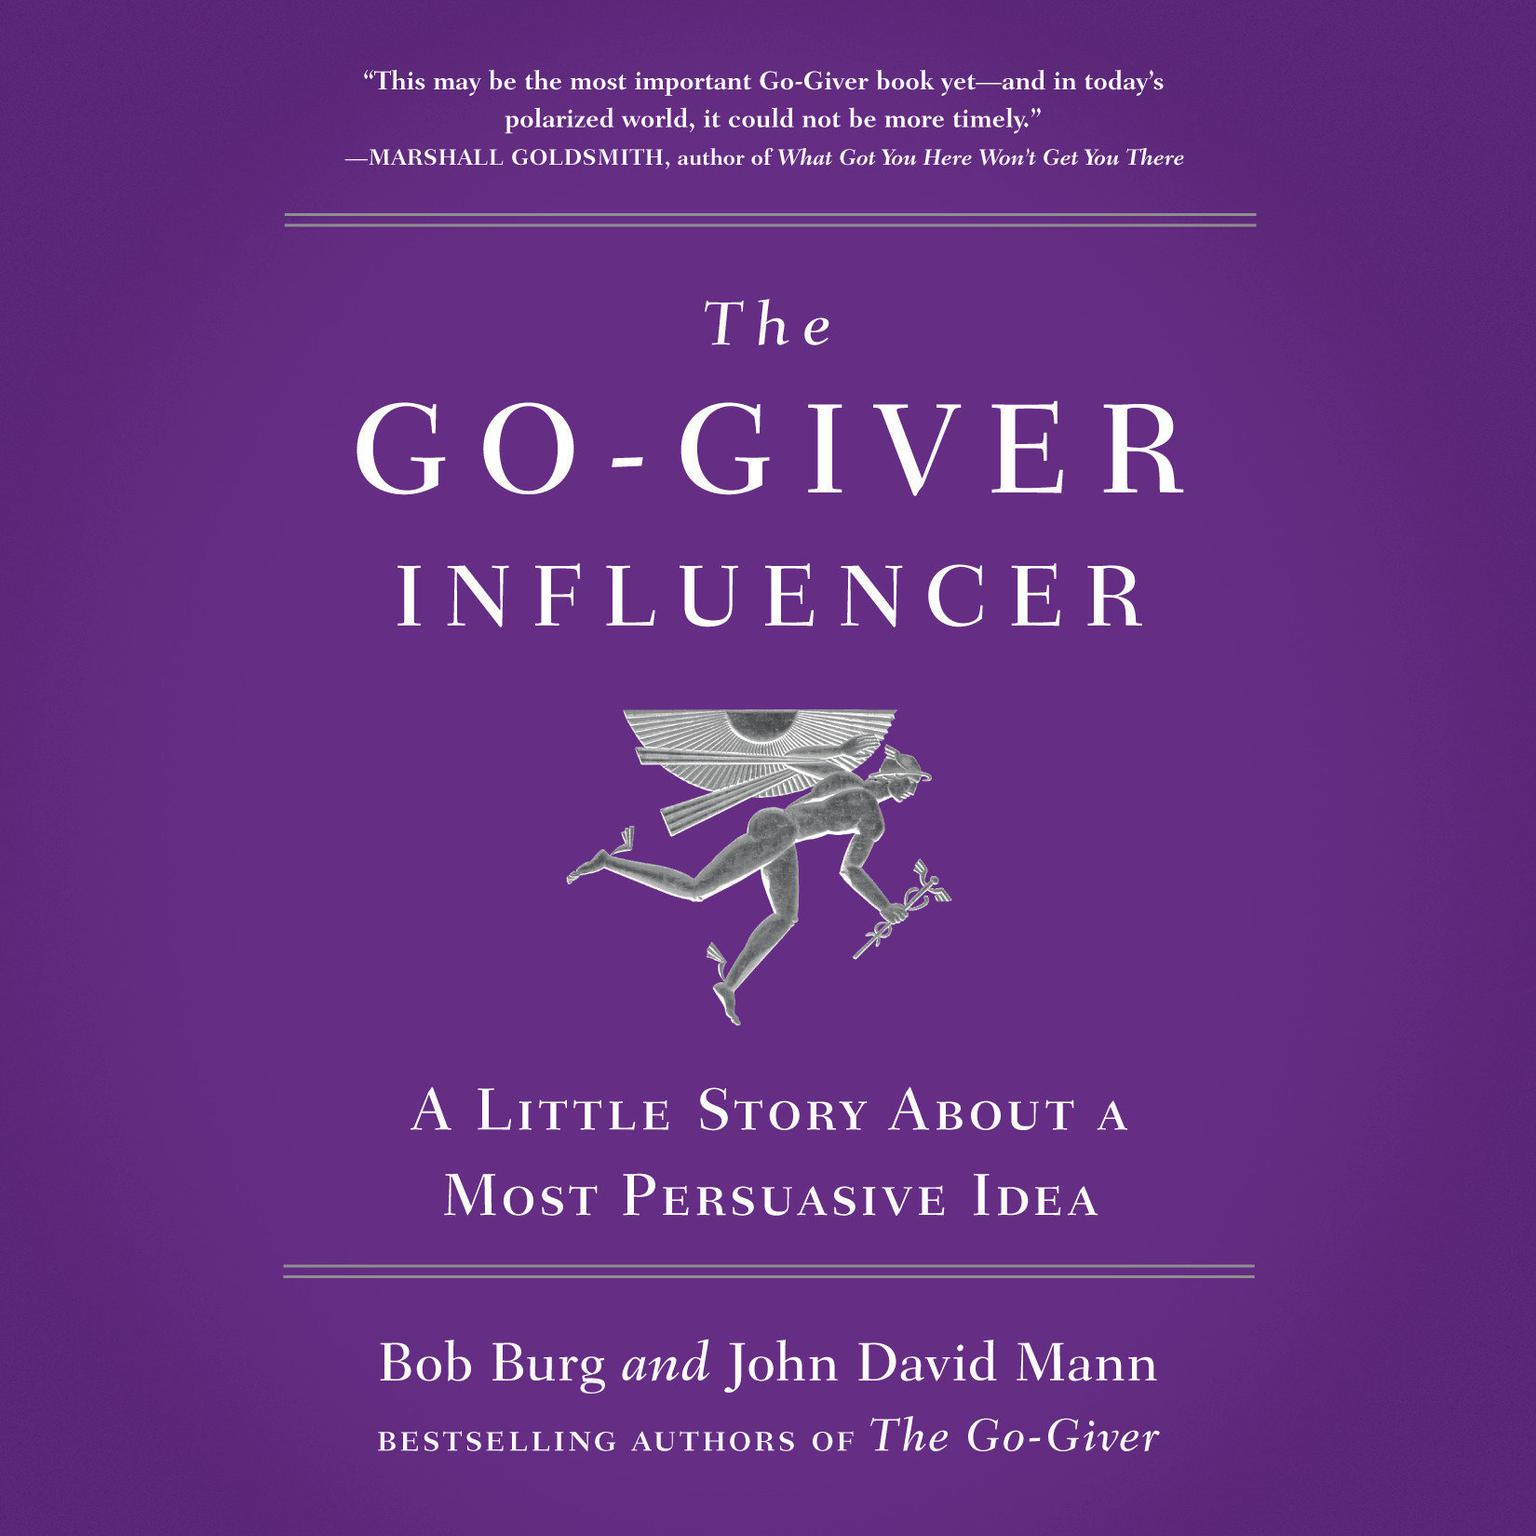 The Go-Giver Influencer: A Little Story About a Most Persuasive Idea (Go-Giver, Book 3) Audiobook, by Bob Burg